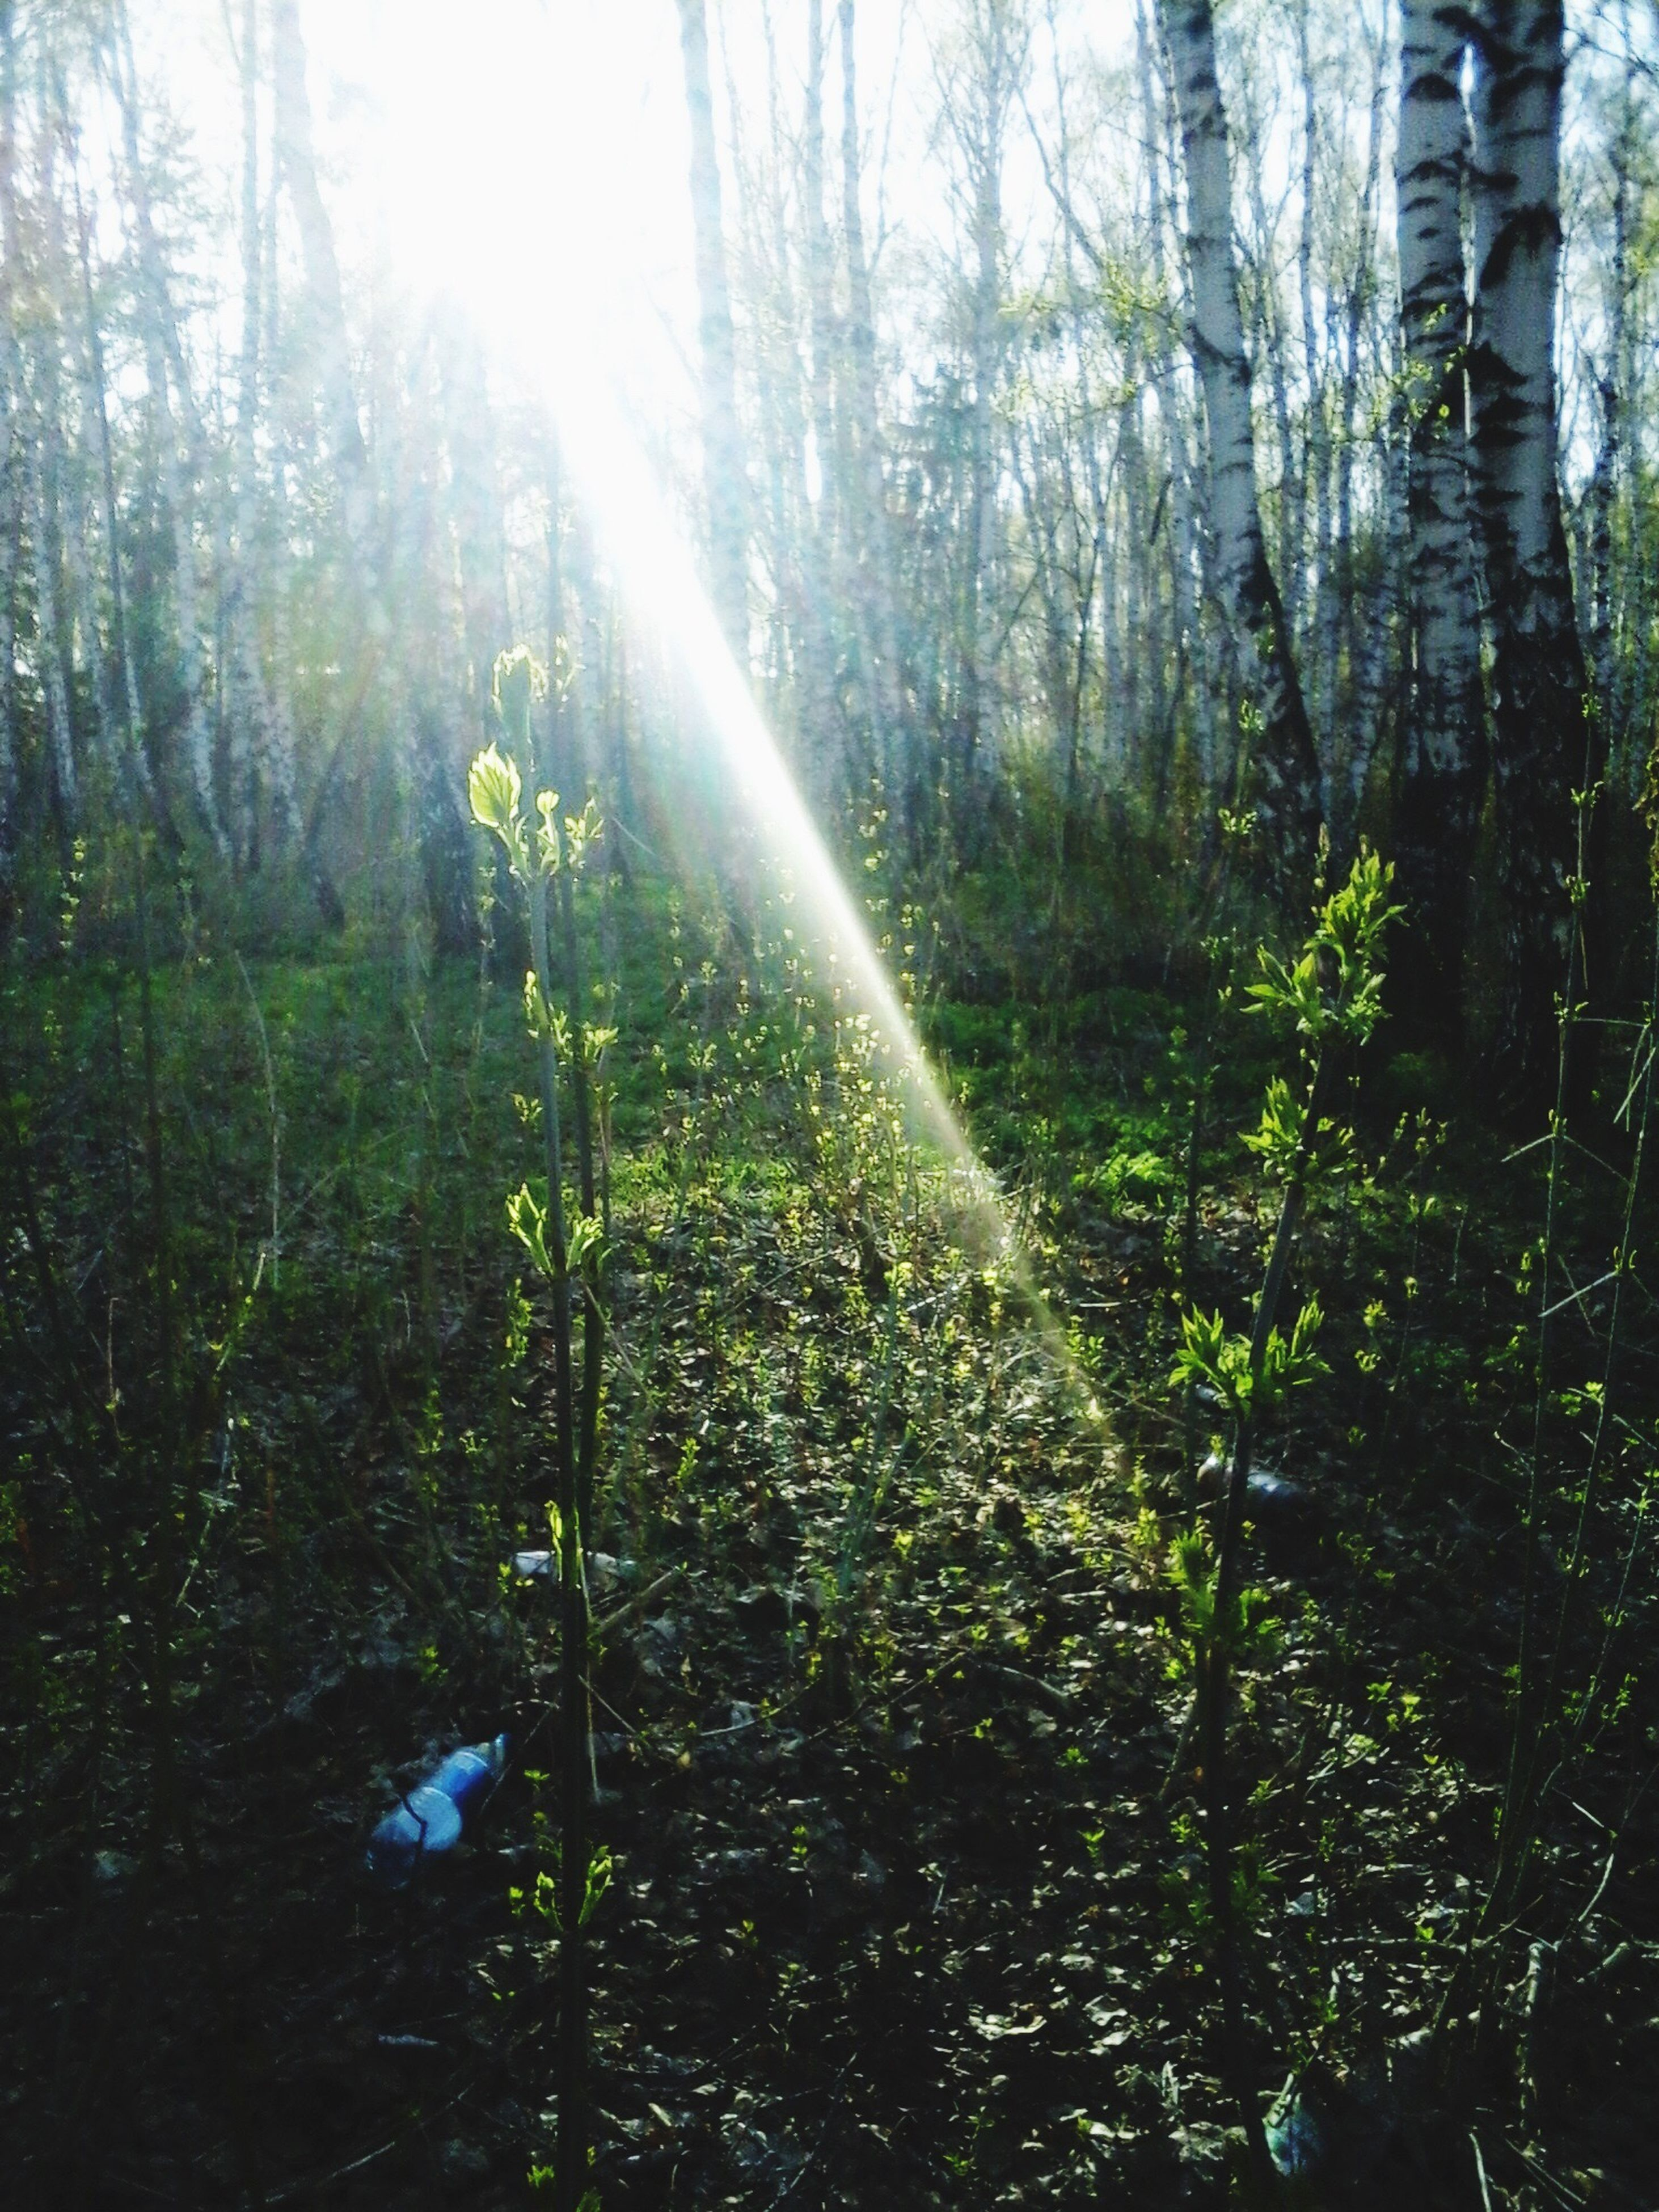 tree, sunbeam, sun, forest, growth, tranquility, sunlight, lens flare, tree trunk, nature, tranquil scene, beauty in nature, woodland, scenics, sunny, non-urban scene, day, plant, green color, bright